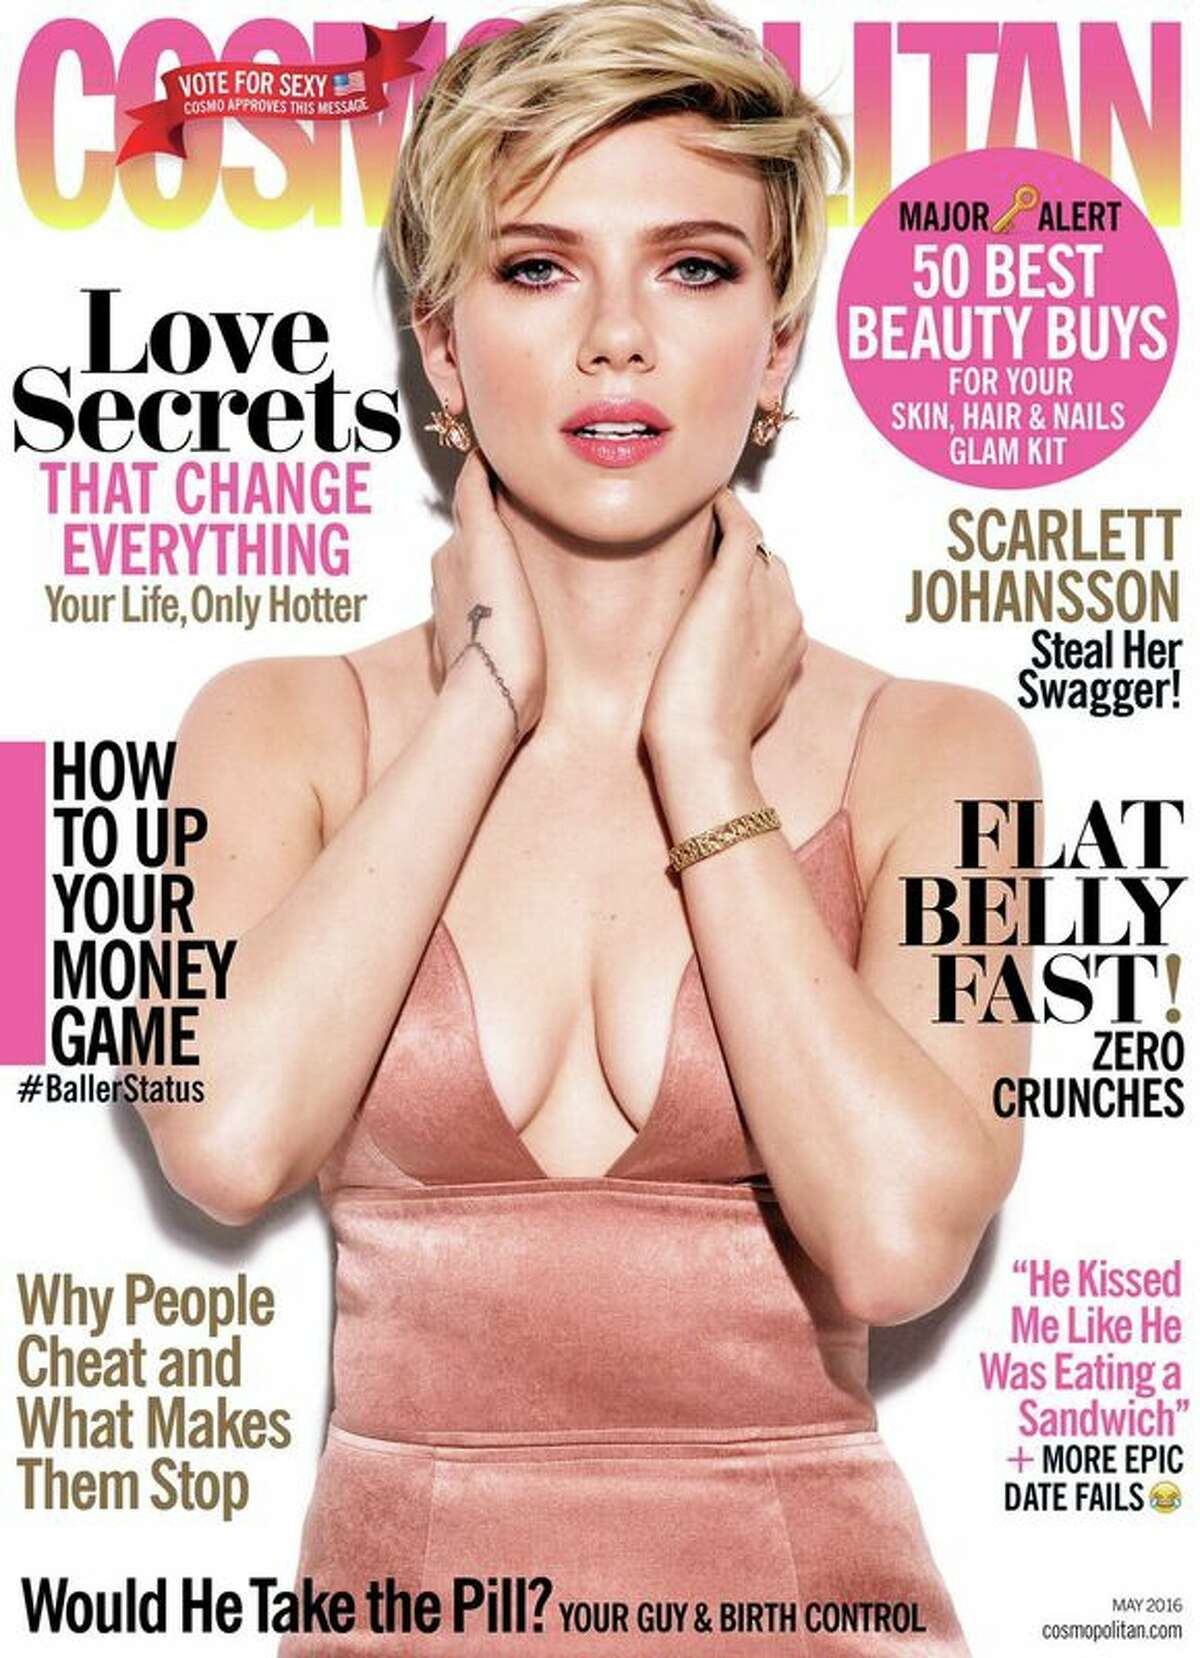 Scarlett Johansson appears on the May 2016 cover of Cosmopolitan magazine. KEEP CLICKING FOR SOME OF HER MOST NOTABLE QUOTES FROM THE INTERVIEW.